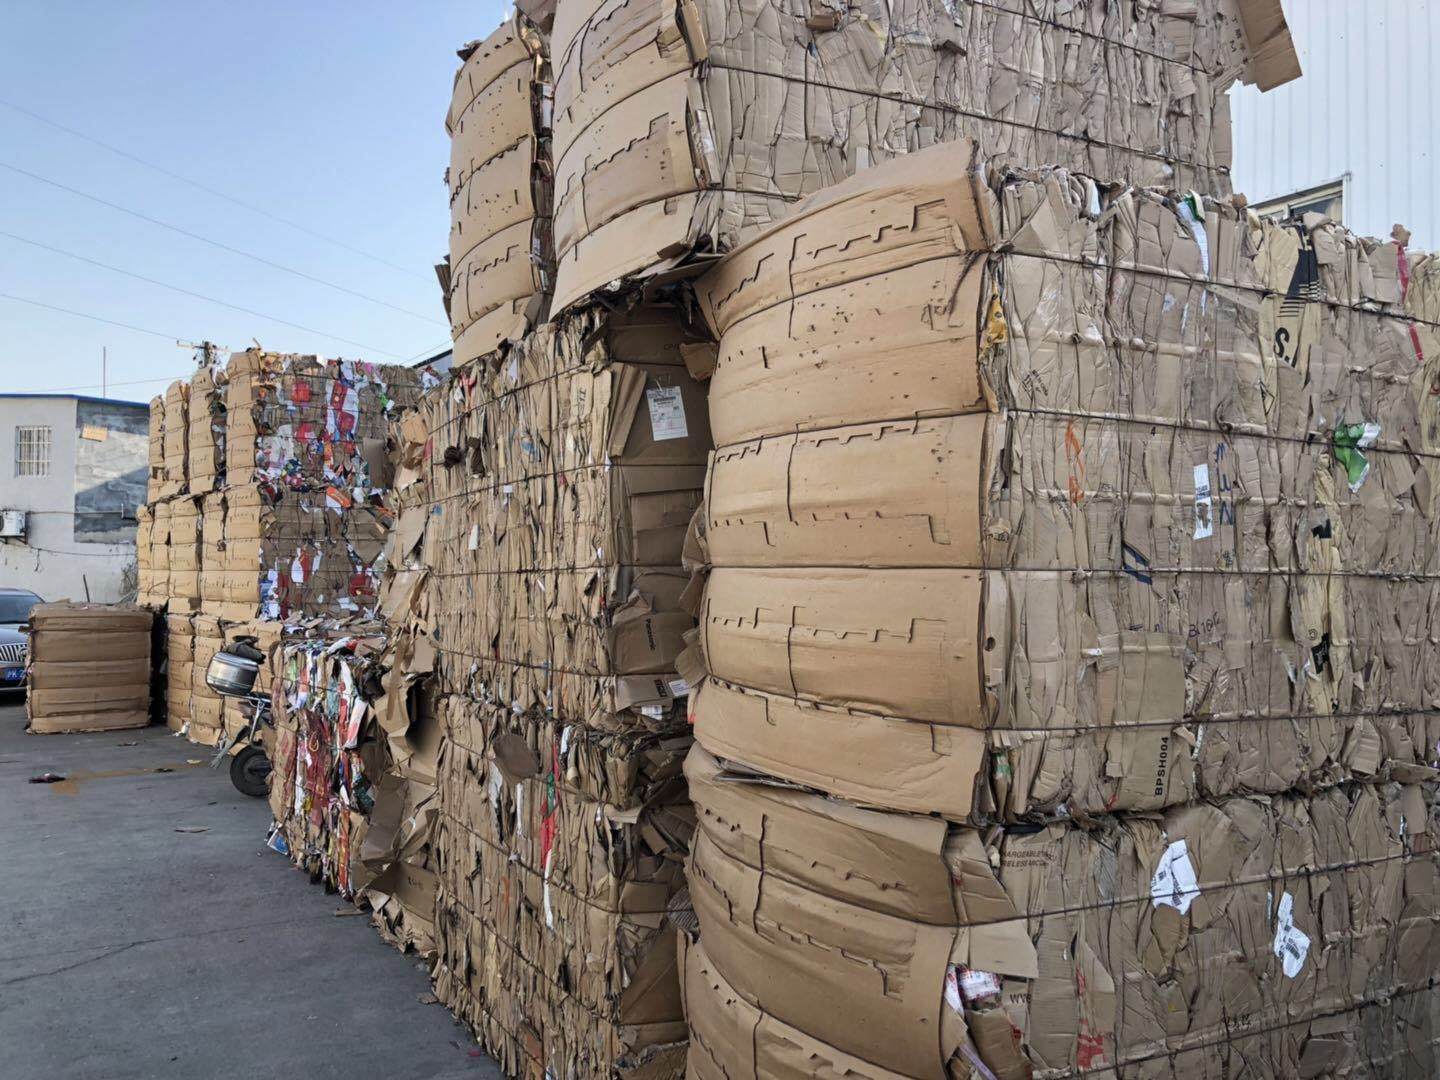 Pallets of recycled paper at the informal recycling center close to Concordia.